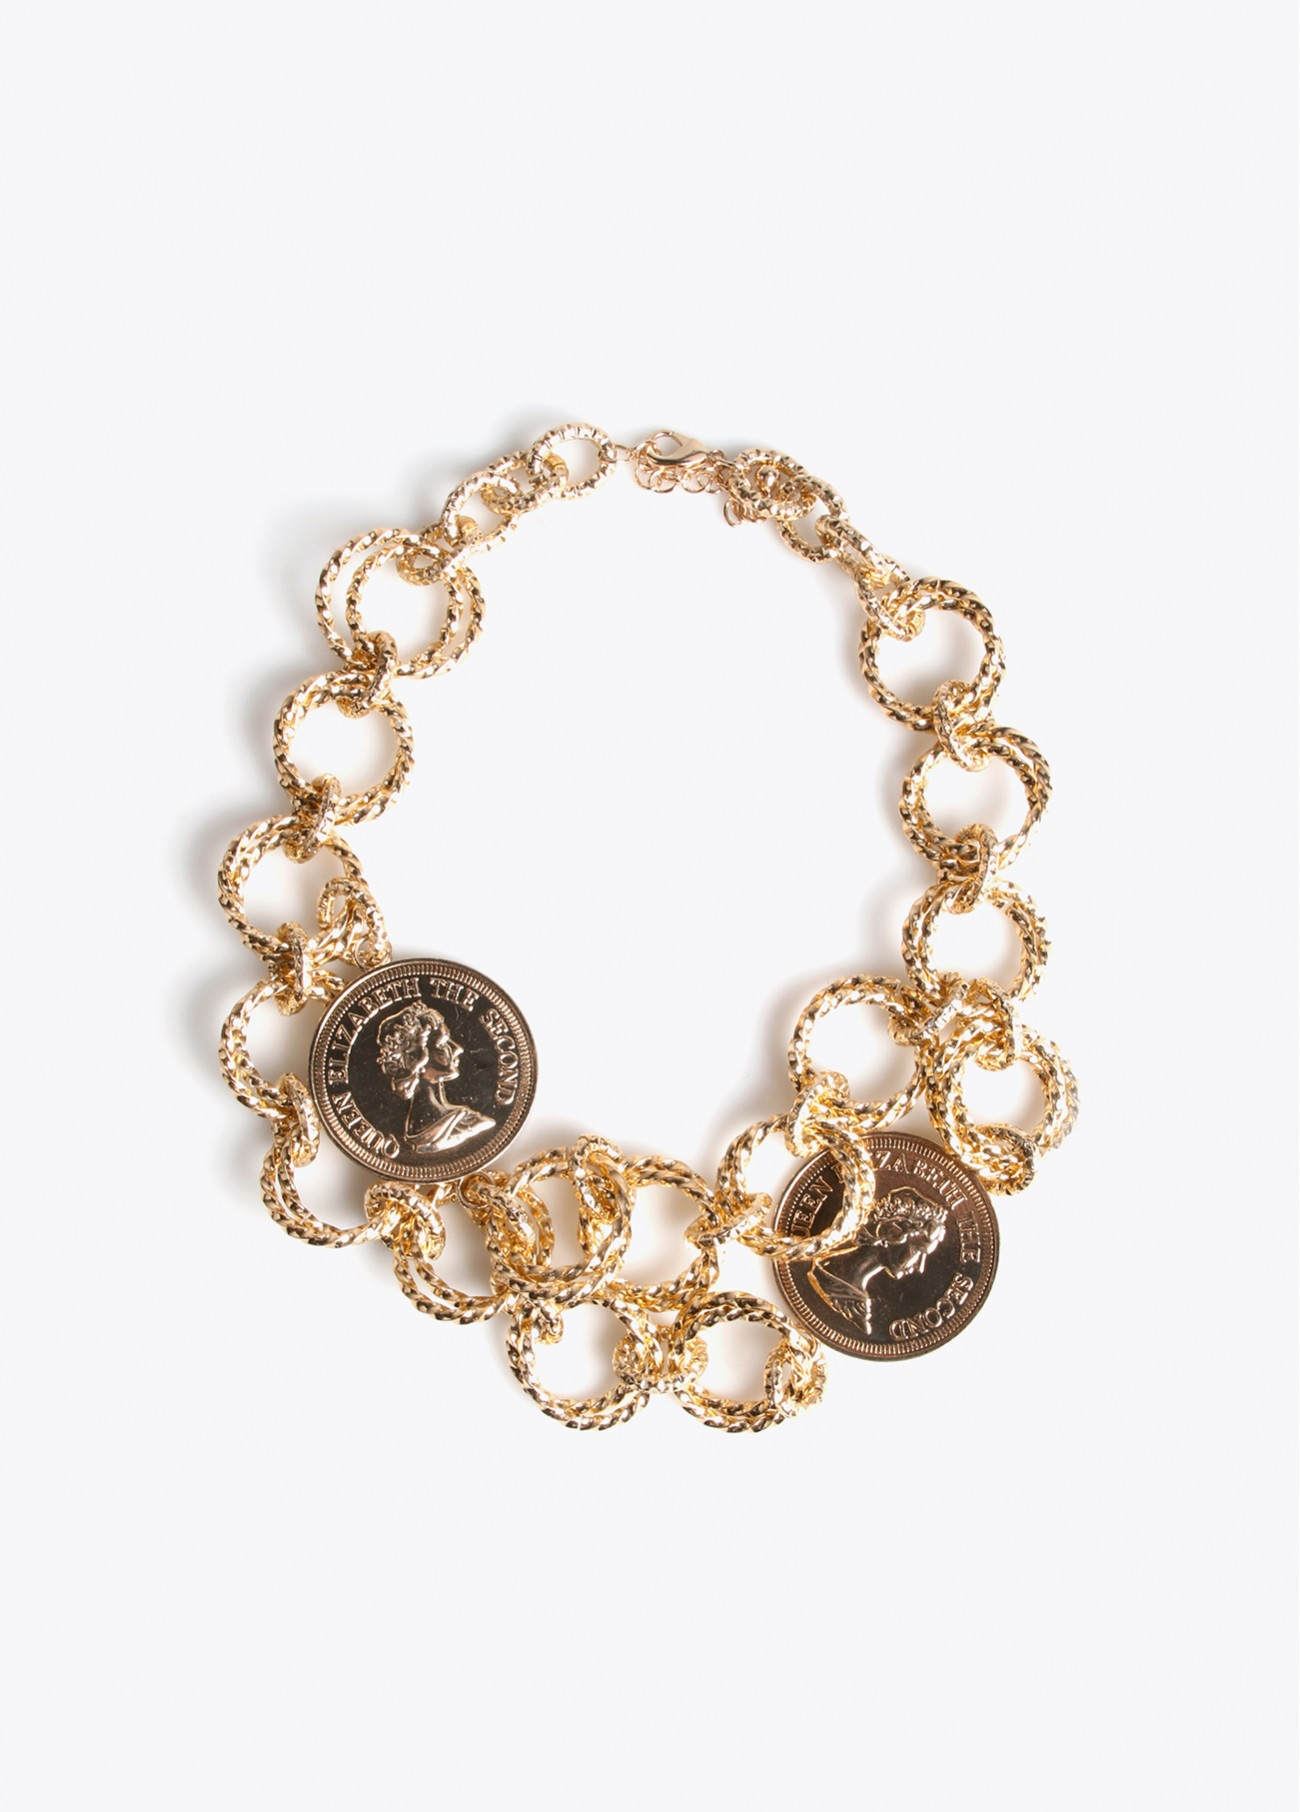 Collar argollas y monedas